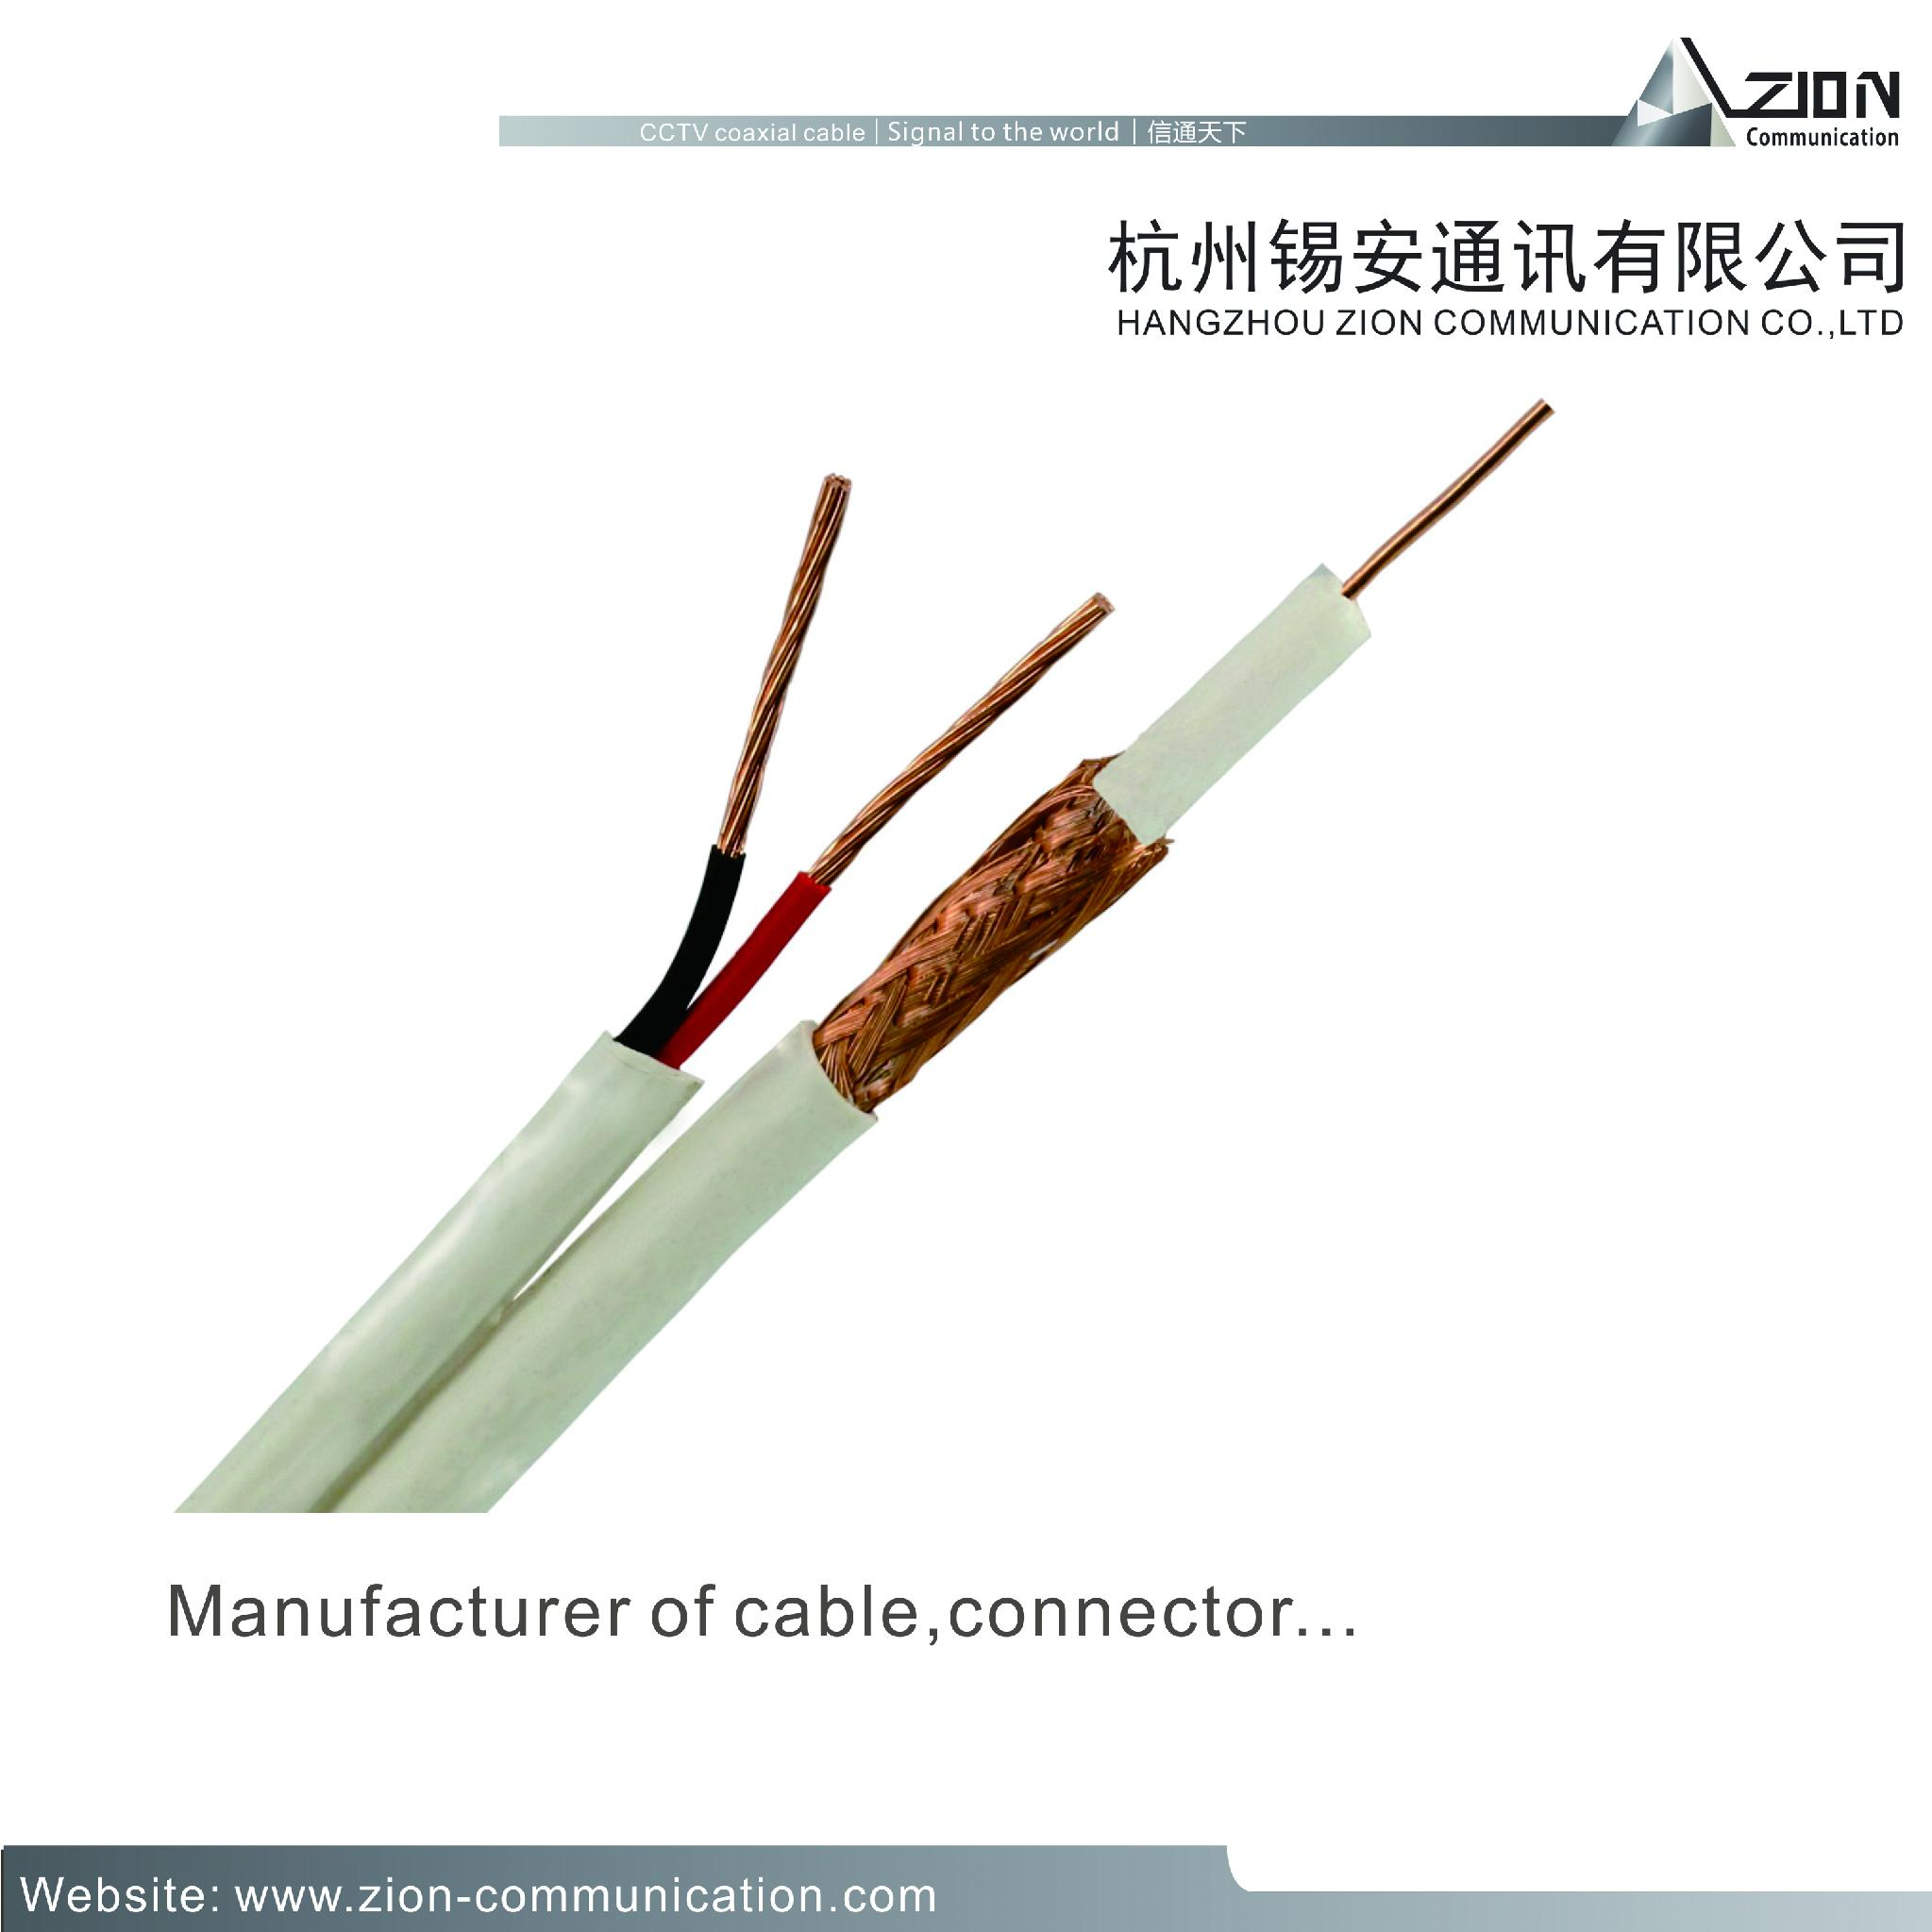 high quality RG6/U 18AWG / 2C CCTV Coaxial Cable 95%CCTV POWER CABLE for CAMERA 1